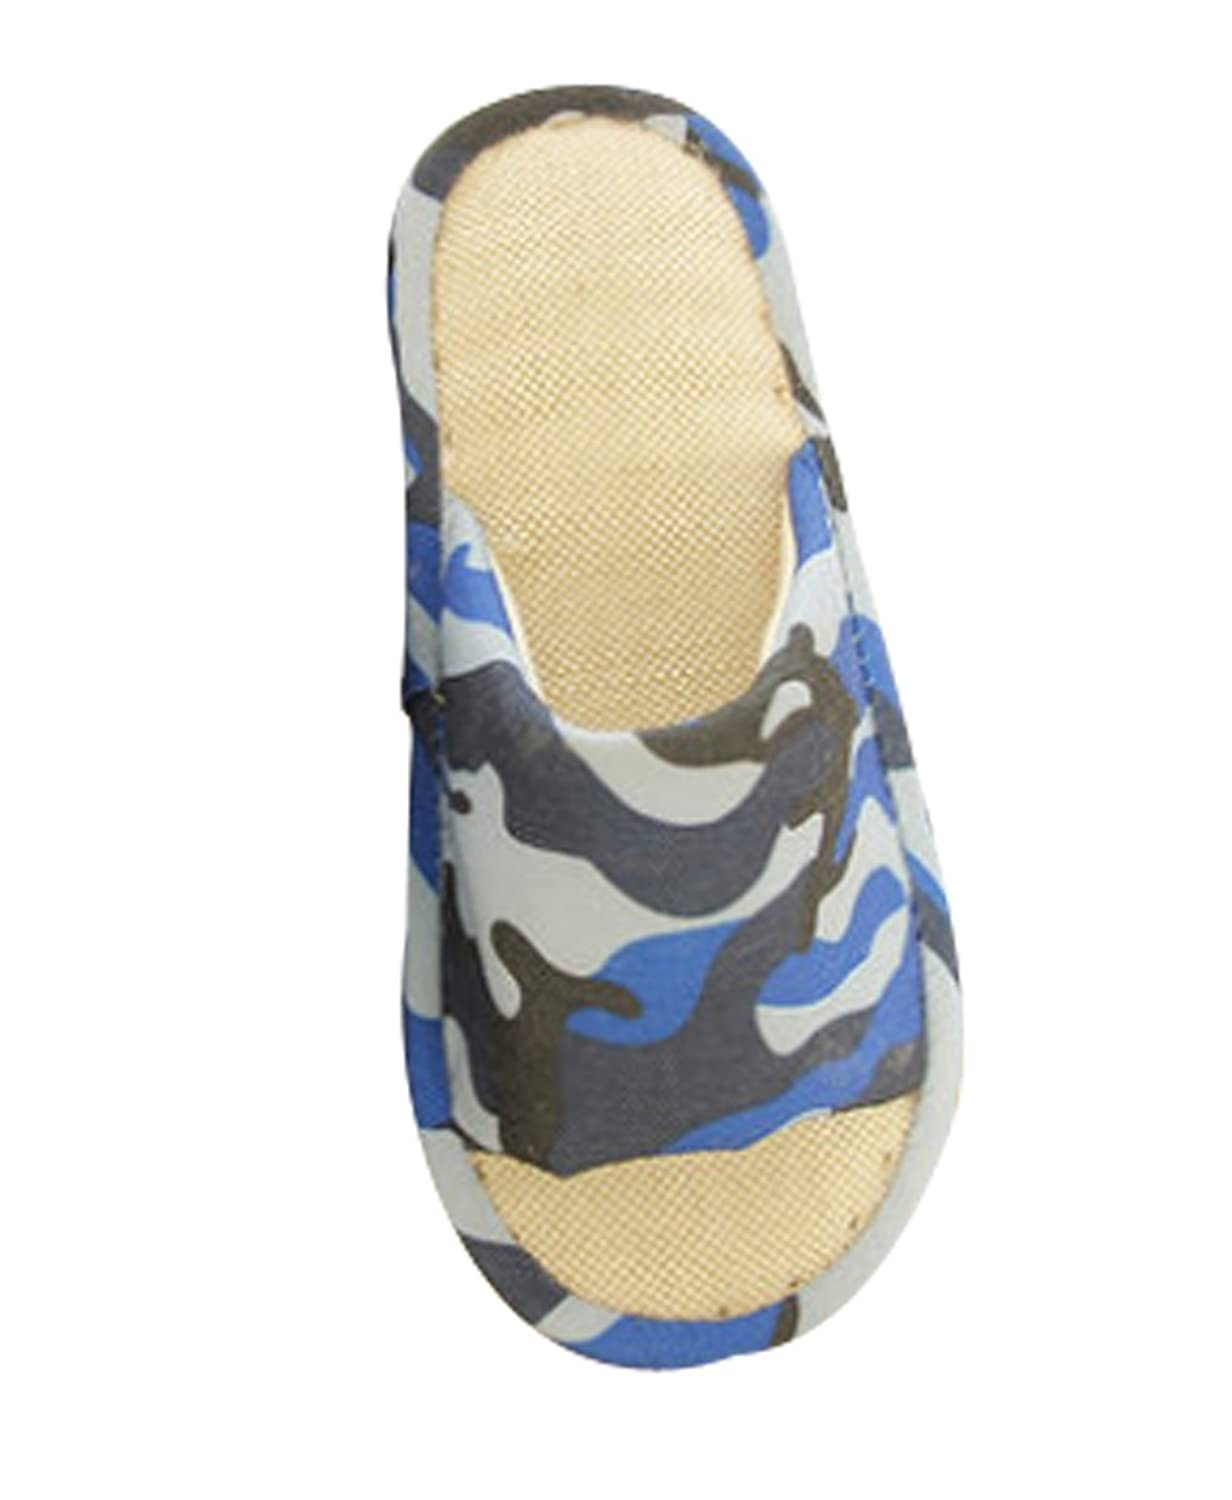 Cattior Mens Camouflage Open Toe House Slippers Bedroom Slippers